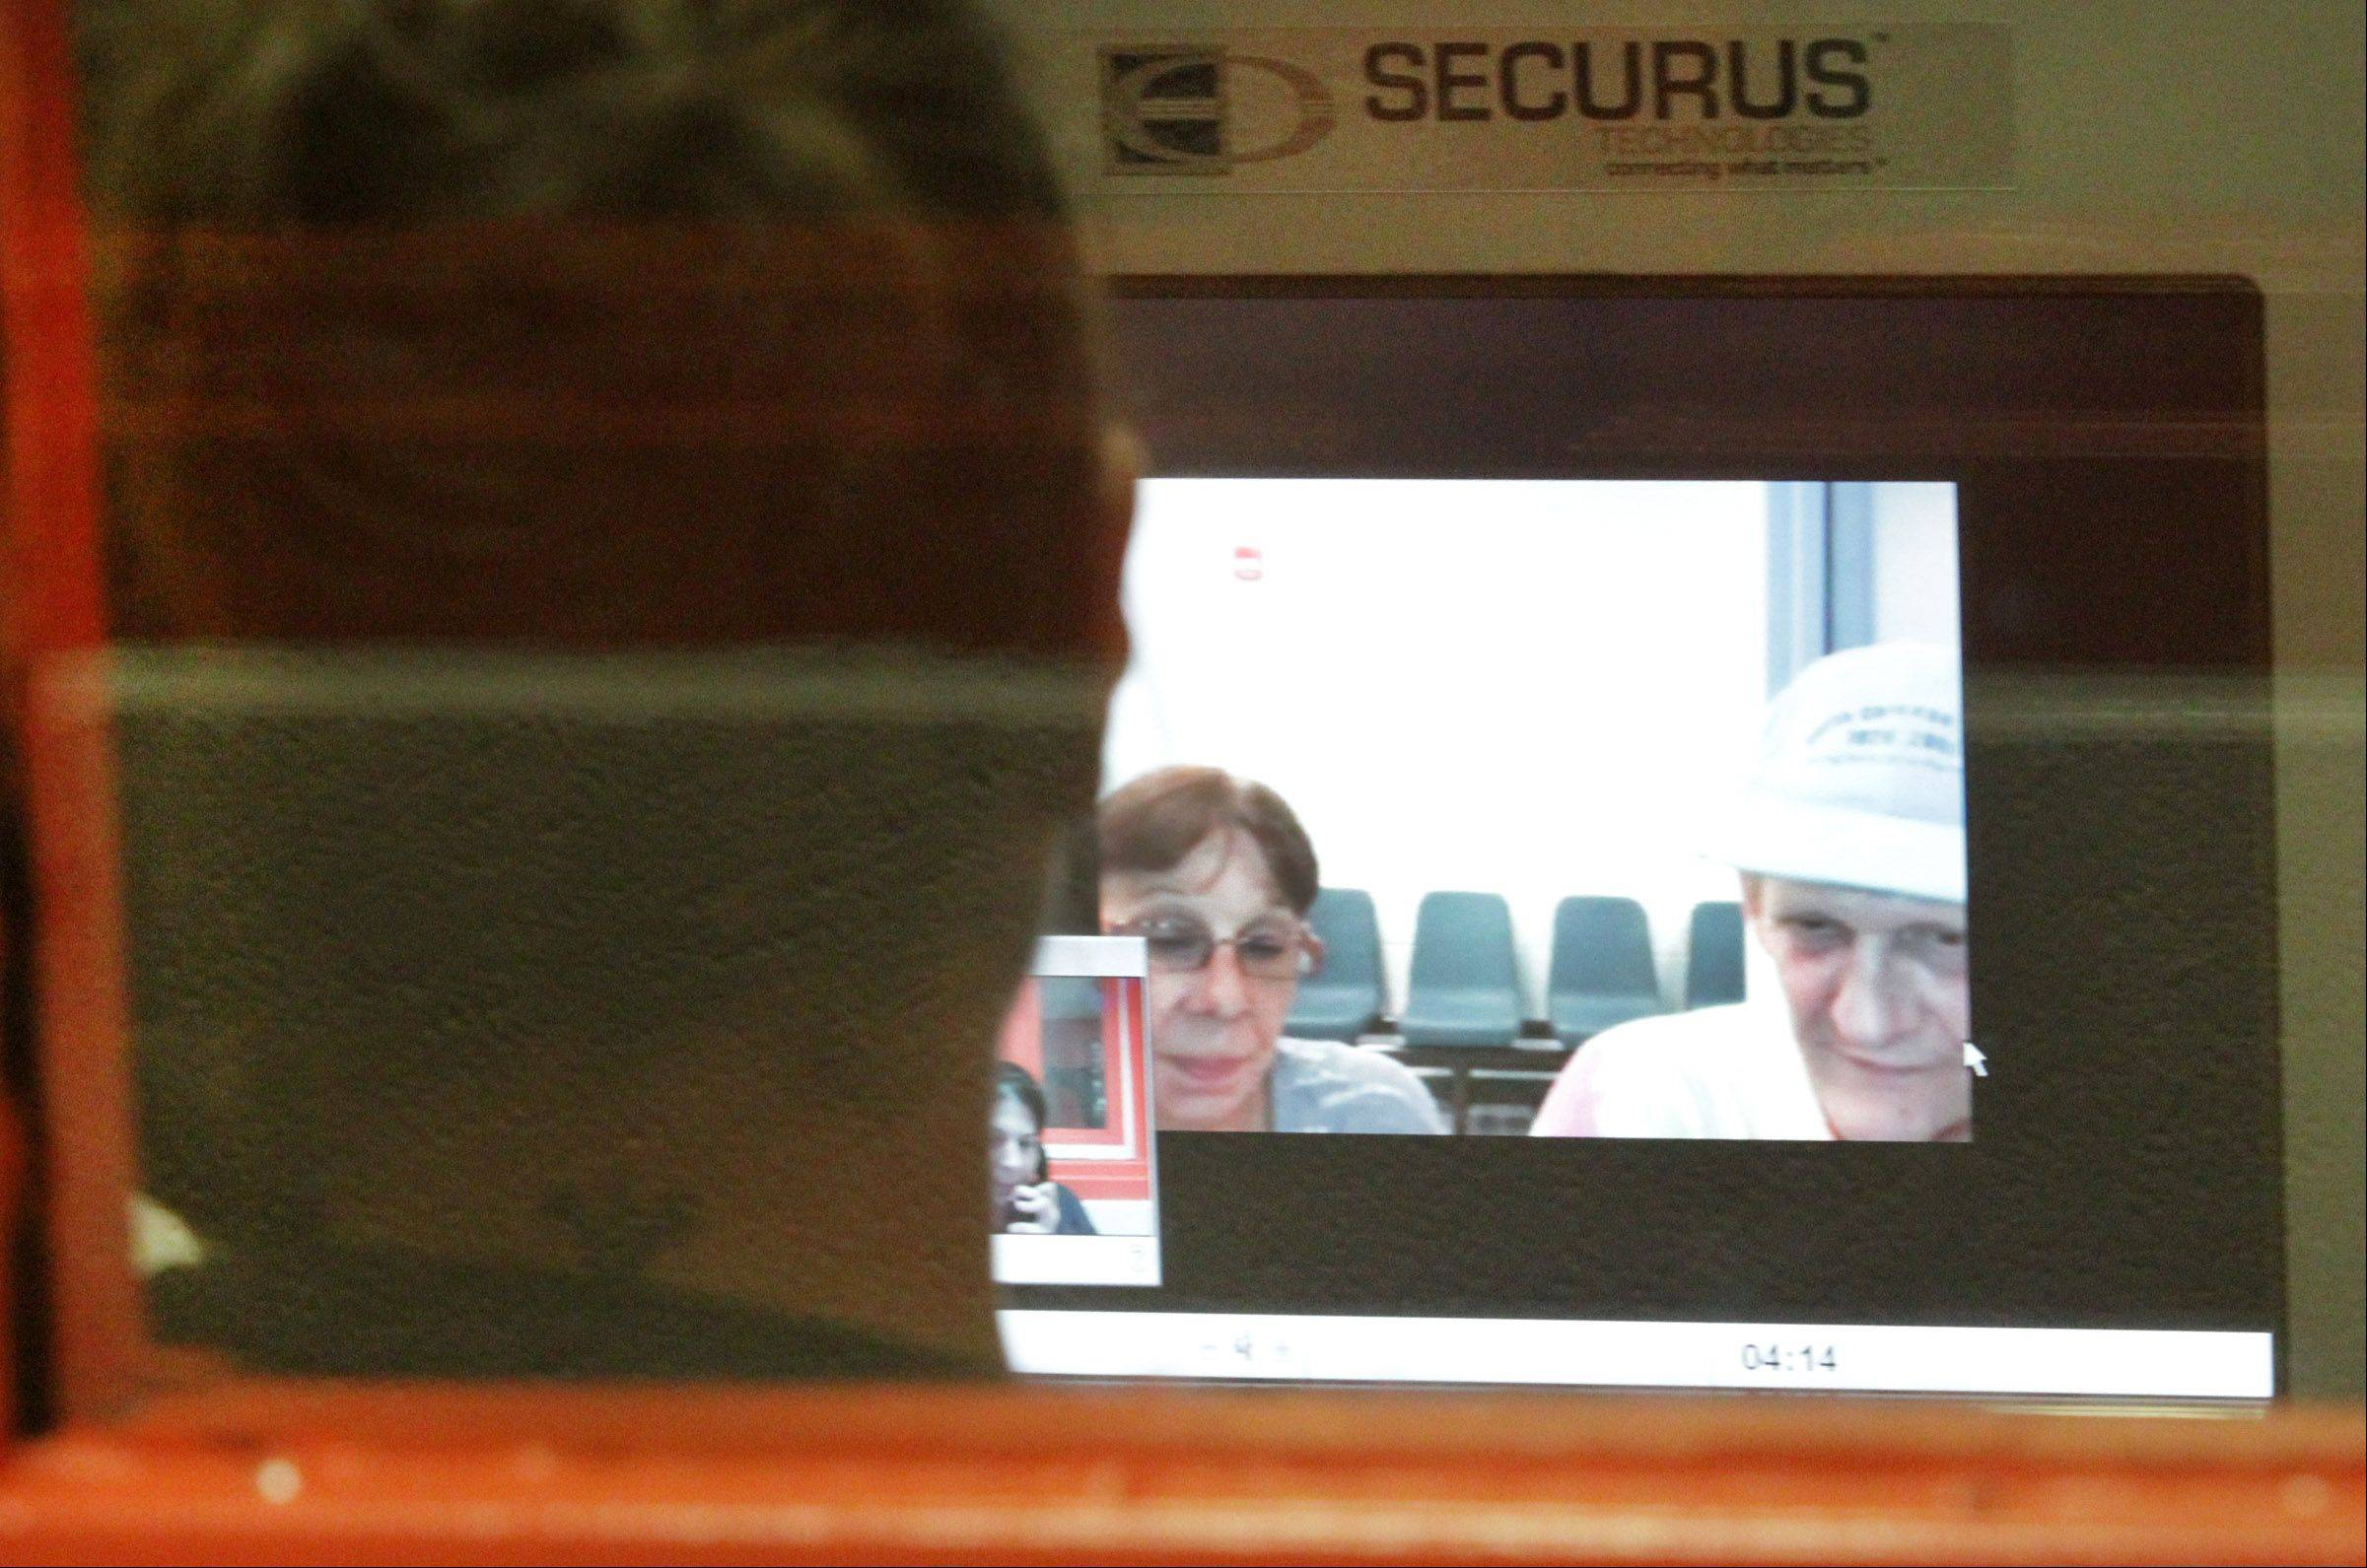 When she was an inmate at Lake County jail in Waukegan, Beth Coleman of Zion used Skype to speak with her parents Ann and Mark Van Sickle of Zion.